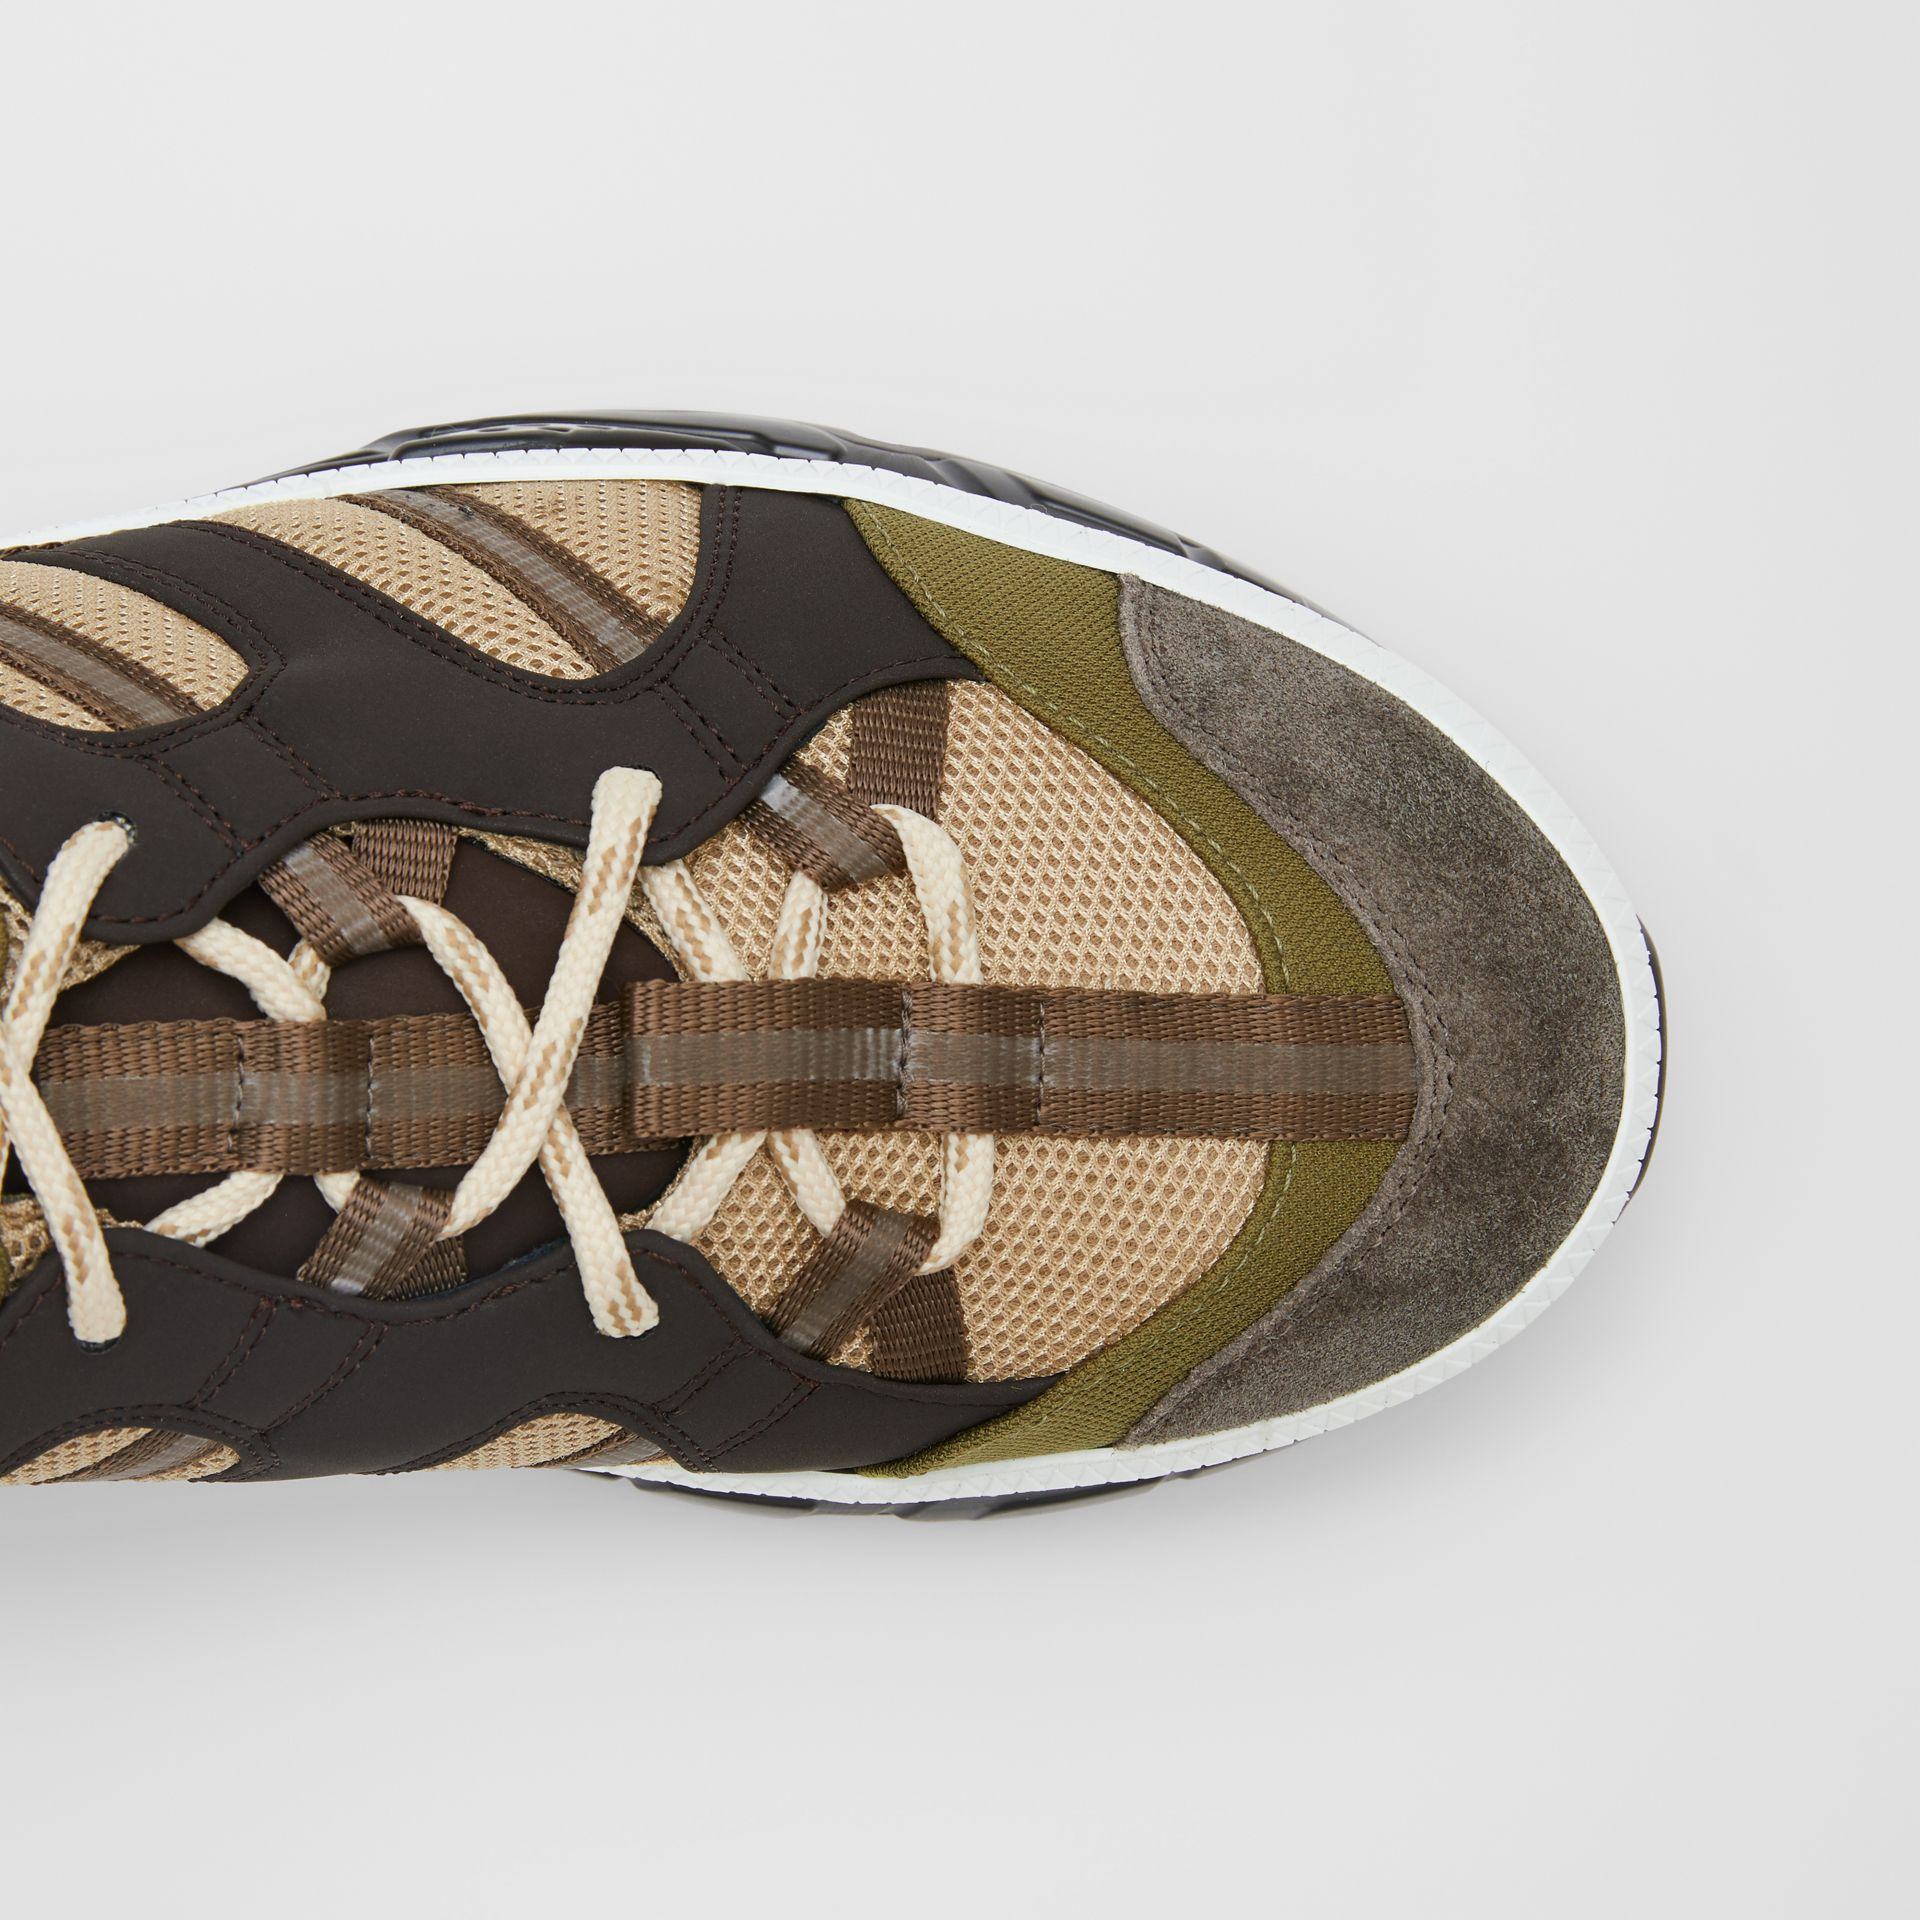 Mesh and Suede Union Sneakers in Khaki / Brown - Men | Burberry Australia - gallery image 1